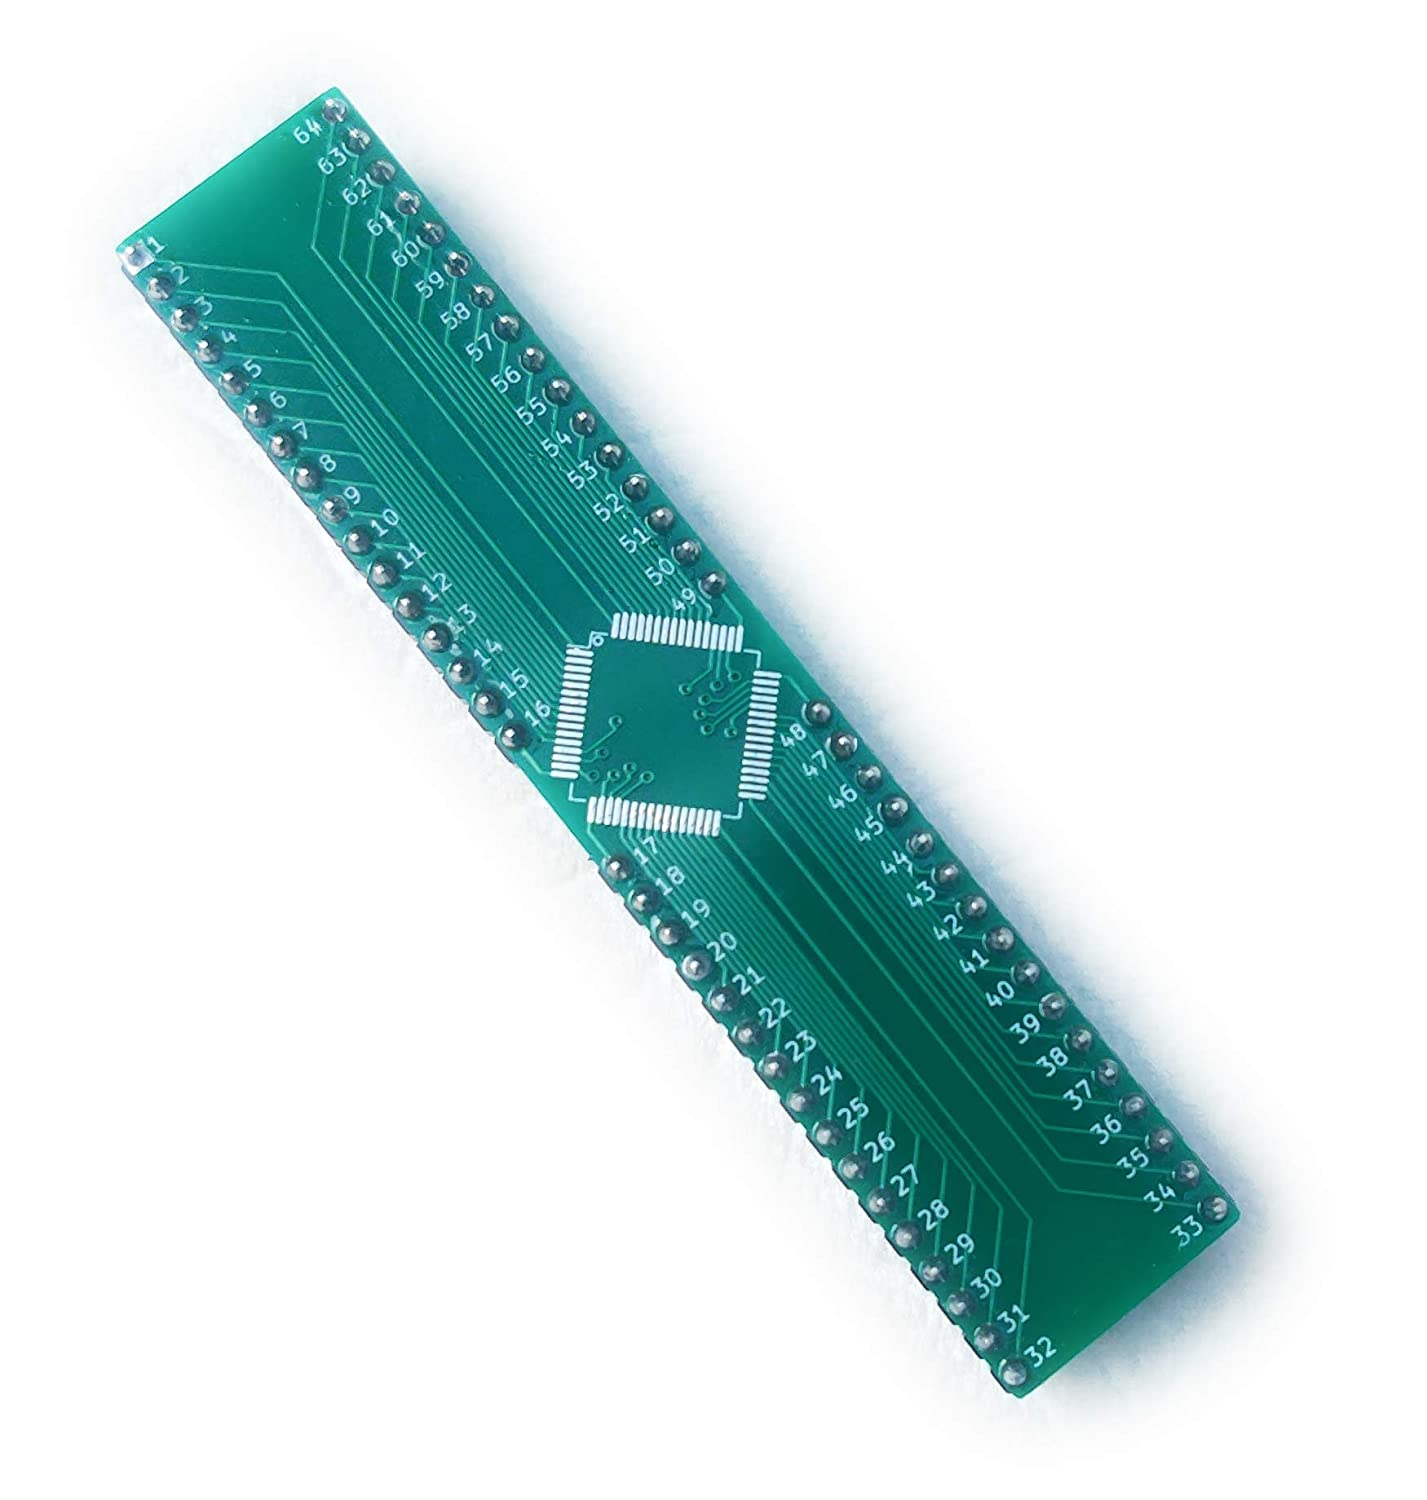 2 Pack QFP-64 LQFP-64 TQFP-64 to Dip-64 for Breadboard Prototyping